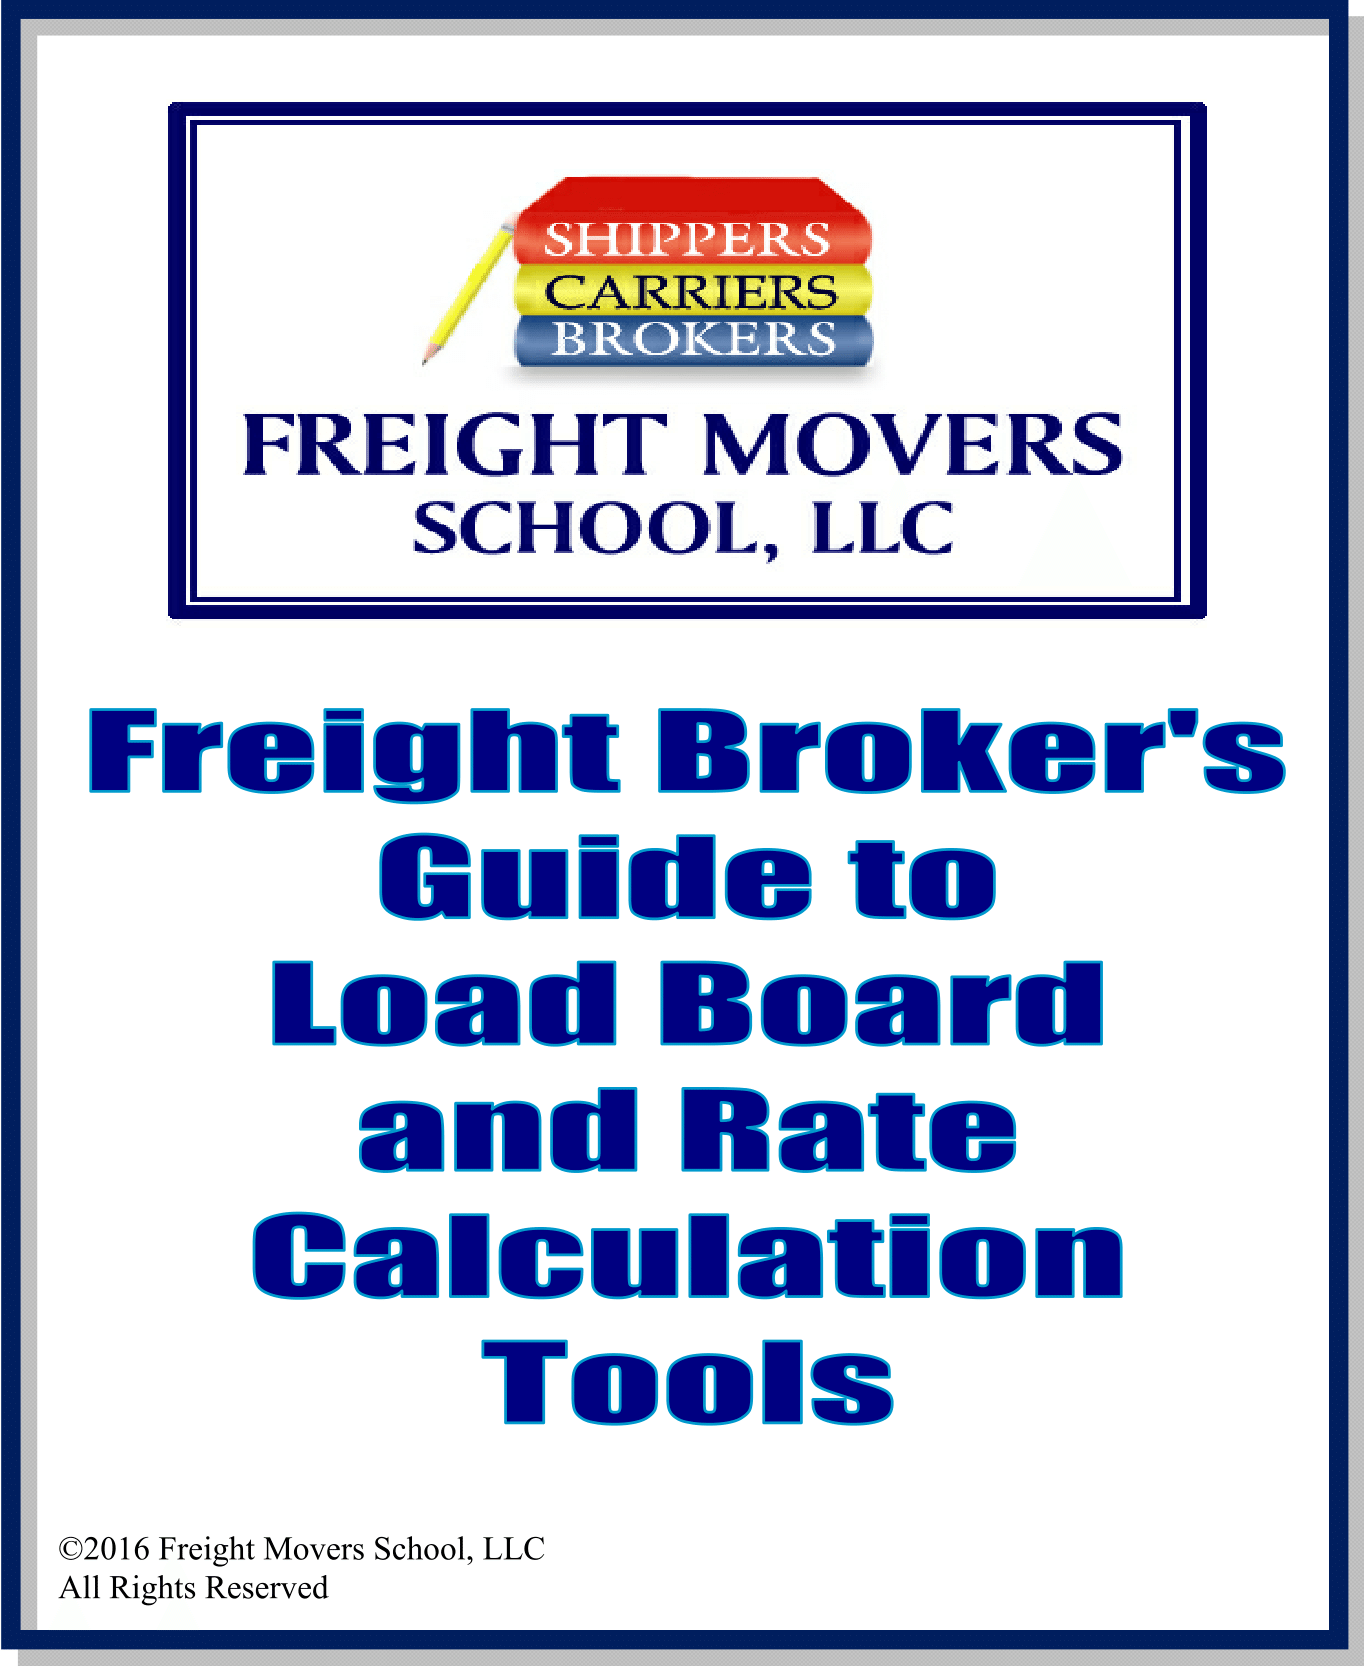 Freight broker's guide to load board and rate calculation tools